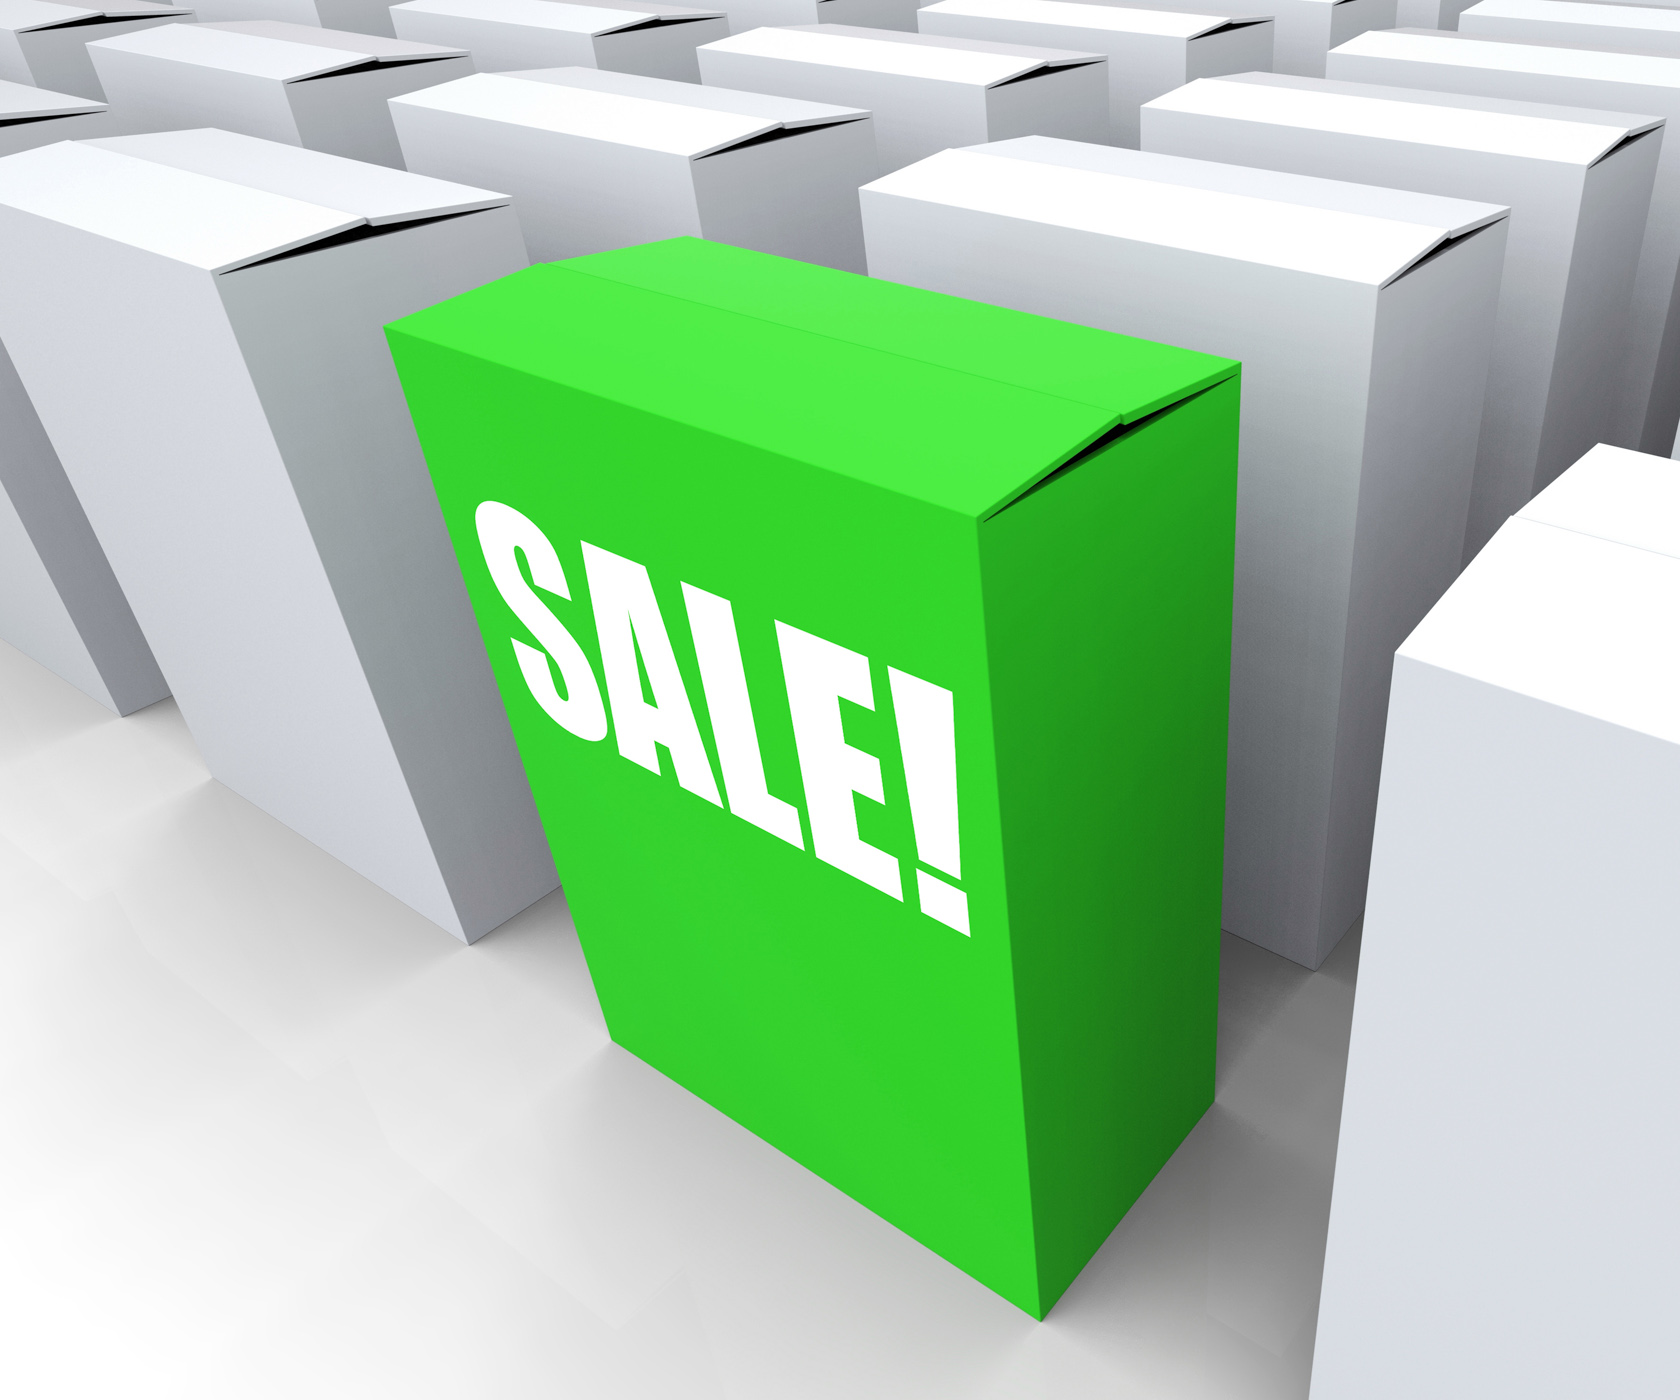 Sale! box shows selling retail and buying photo